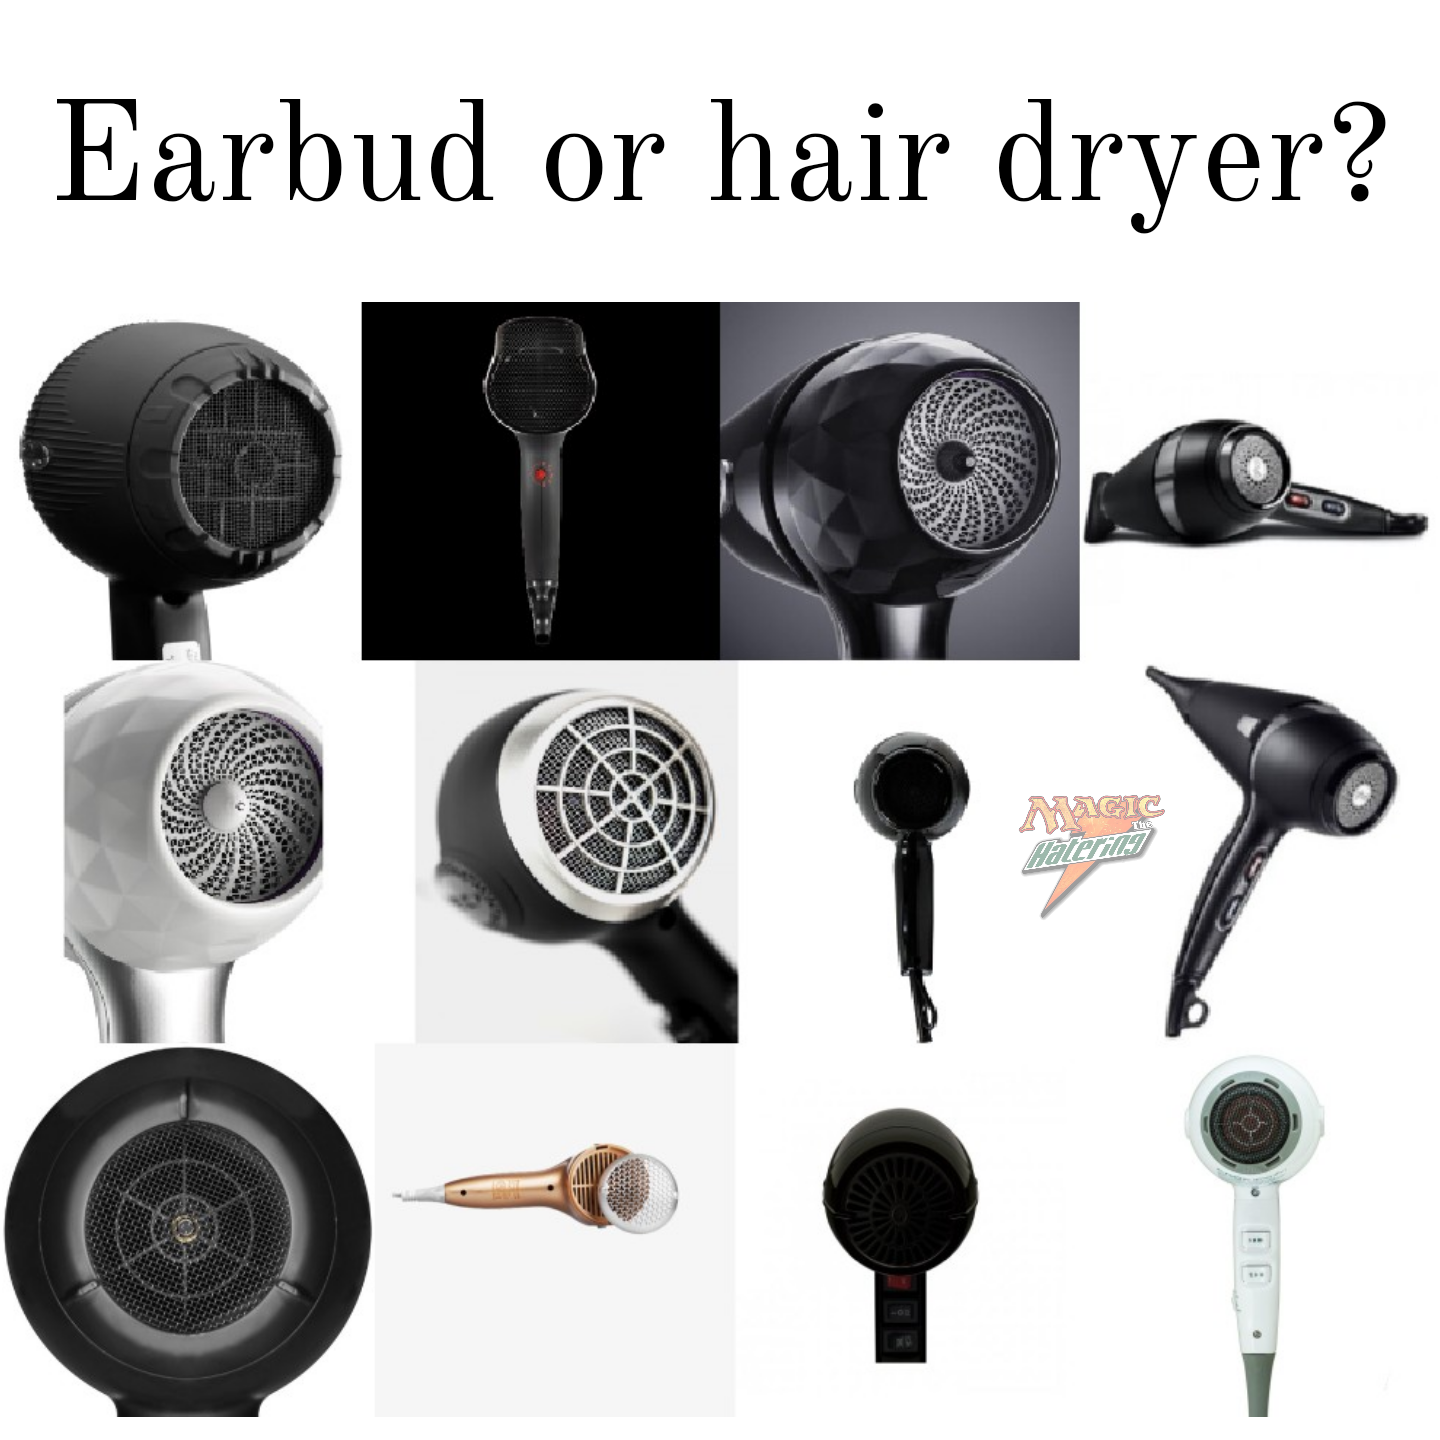 Which is an earbud and which is a hair dryer?